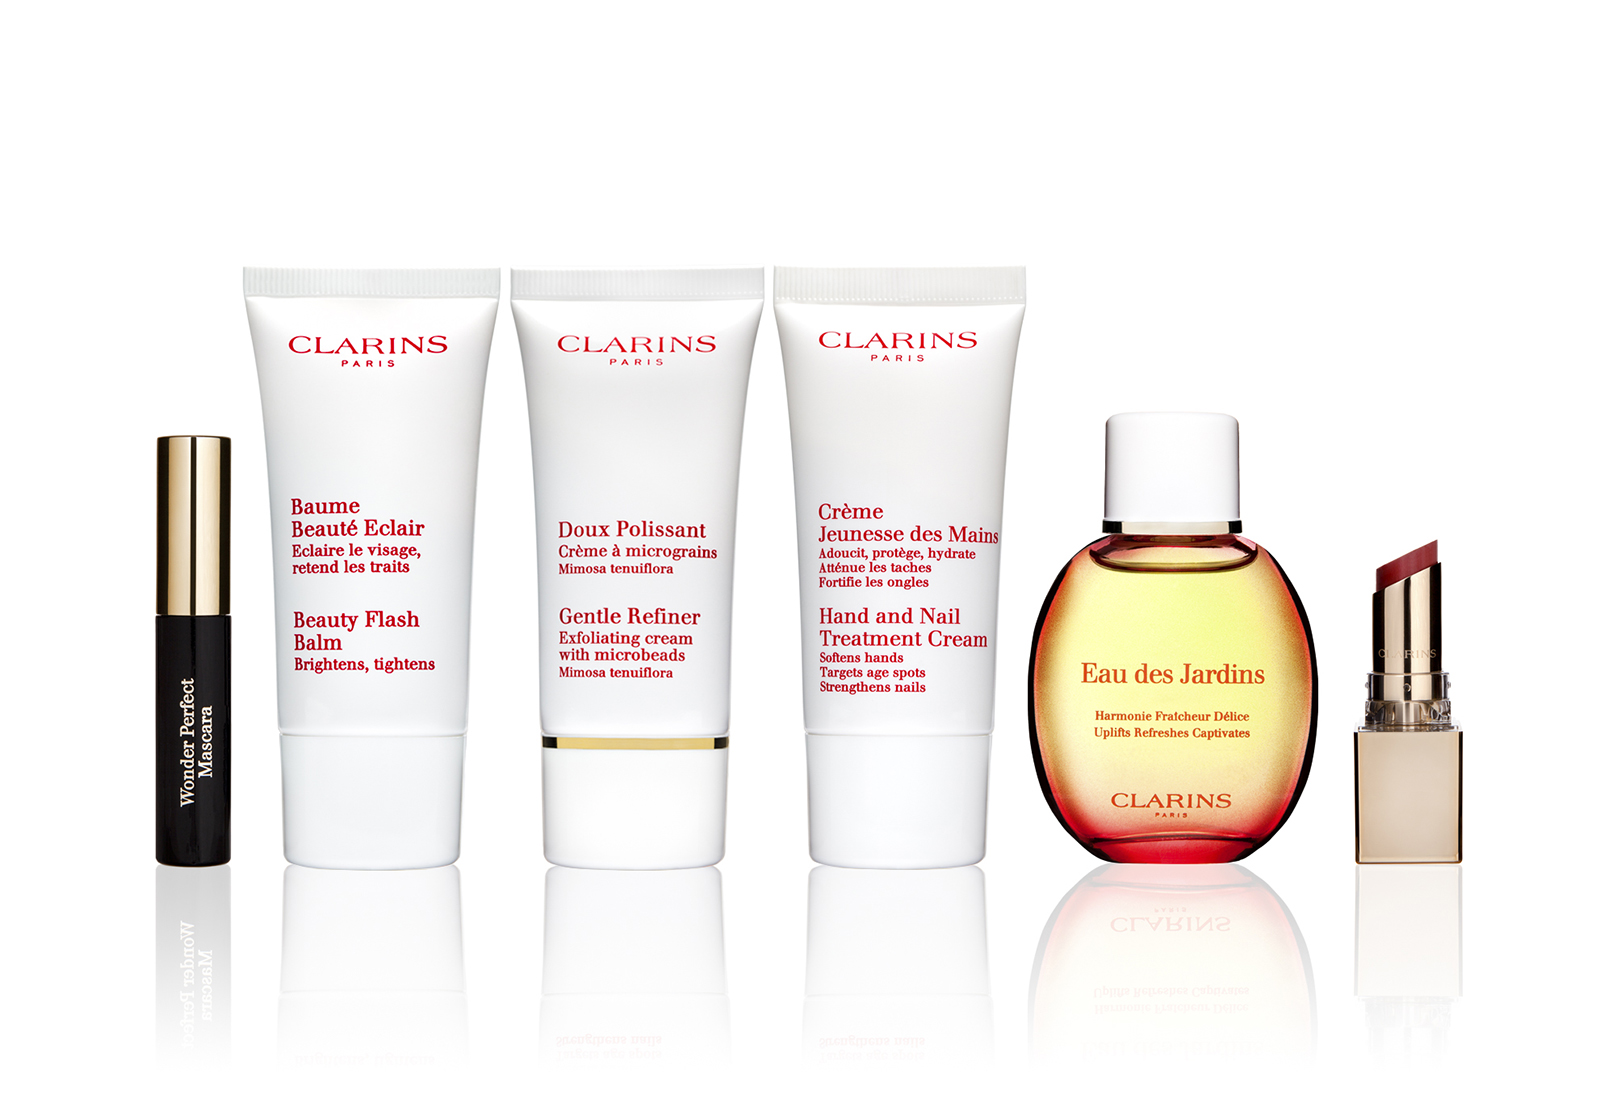 Clarins: Product Shoot